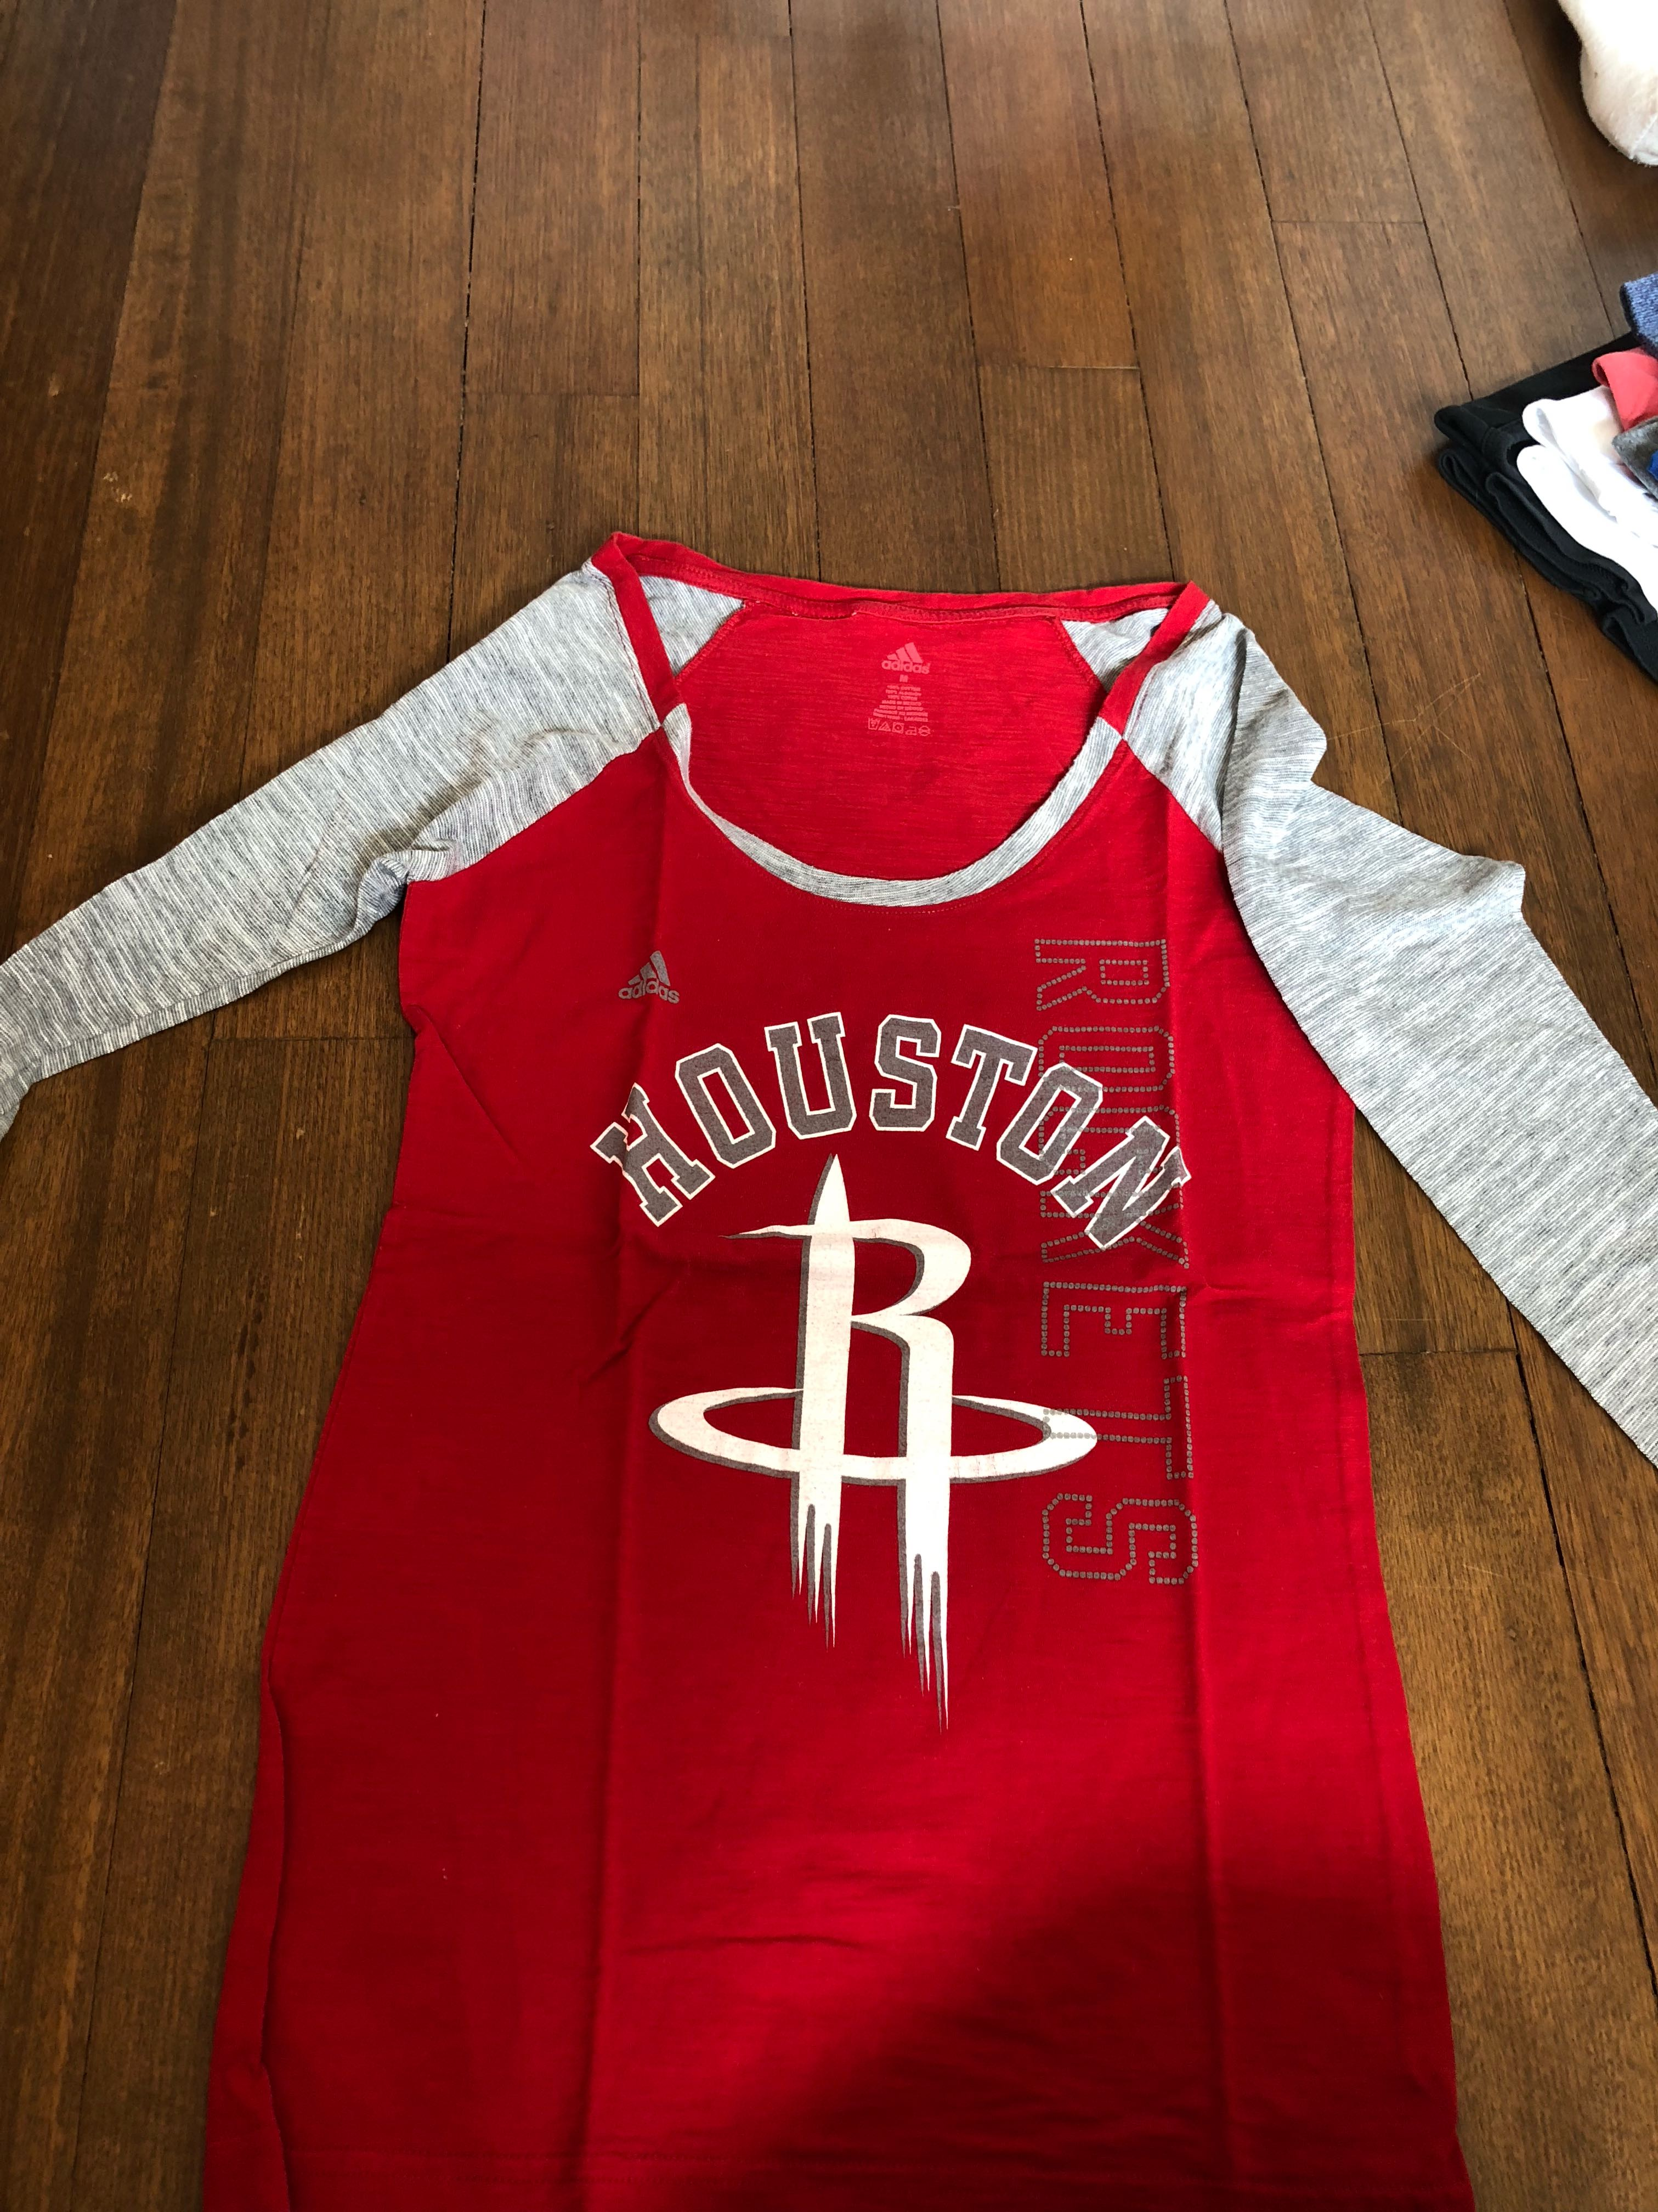 check out 81e85 2964a Women's Adidas Long Sleeve T-Shirt for Houston Rockets